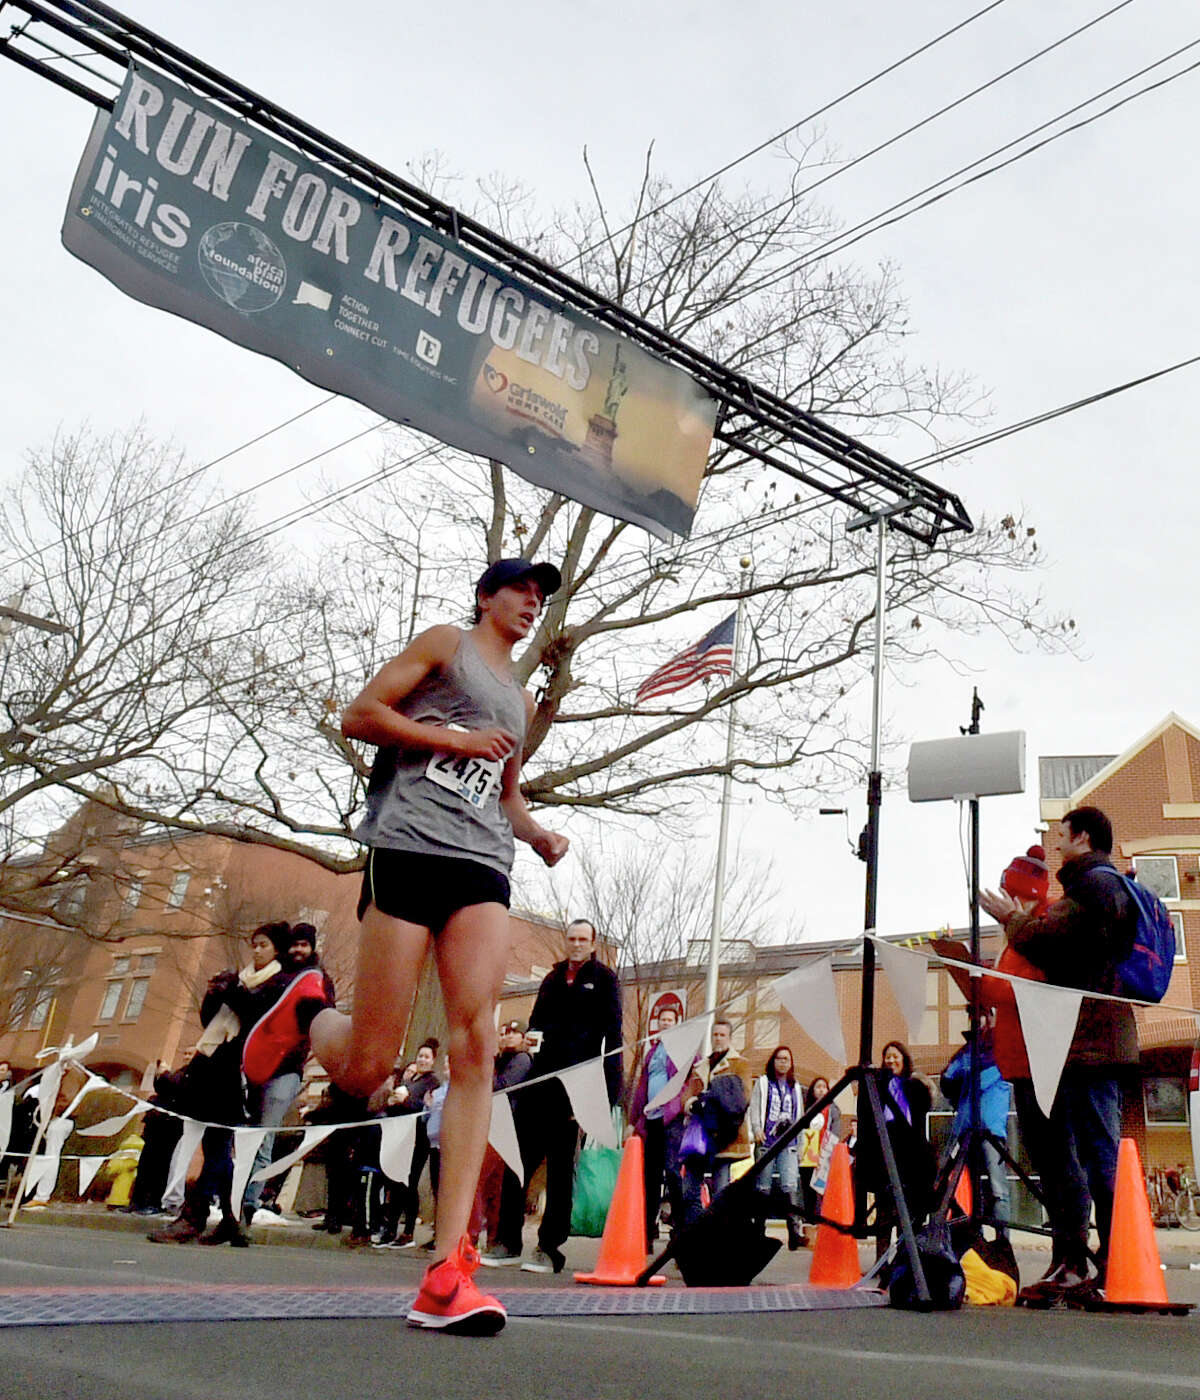 New Haven, Connecticut - Friday, February 4, 2018: First place winner Sam Montclair of North Haven, crosses the finish line of the The IRIS (Integrated Refugee & Immigrant Services)